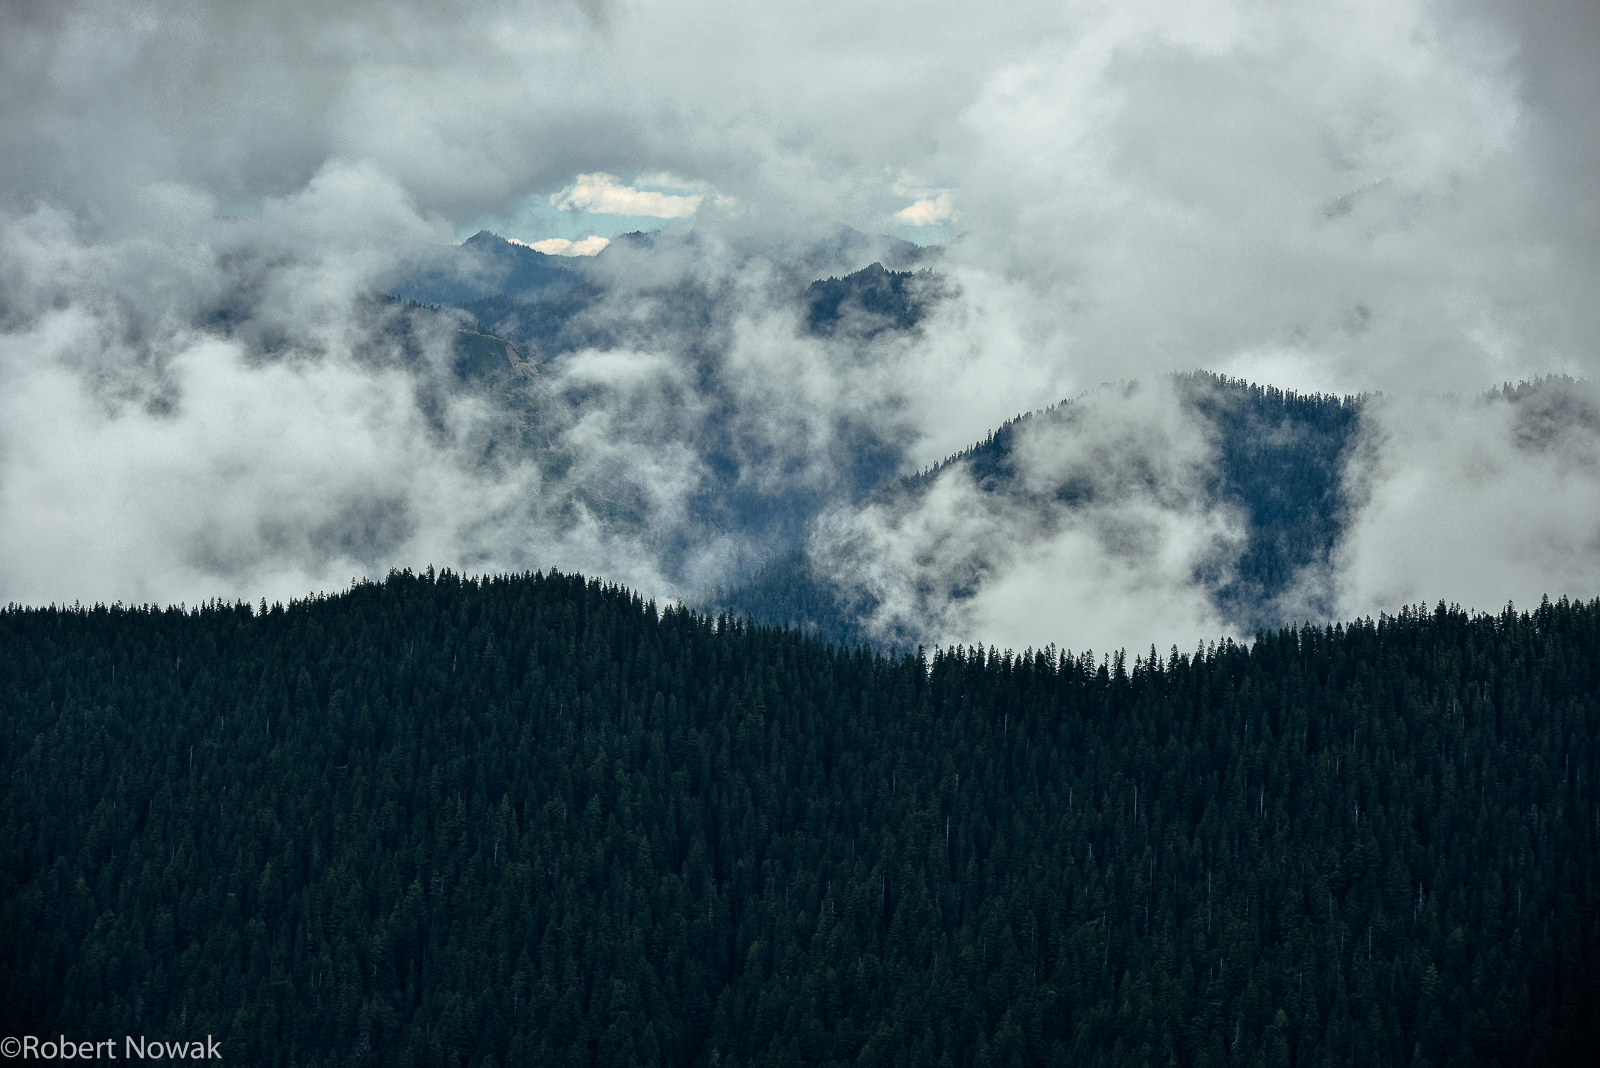 Baker Snoqualmie National Forest, Alpine Lakes Wilderness, Washington, clouds, fog, ridgeline, misty, mountains, photo